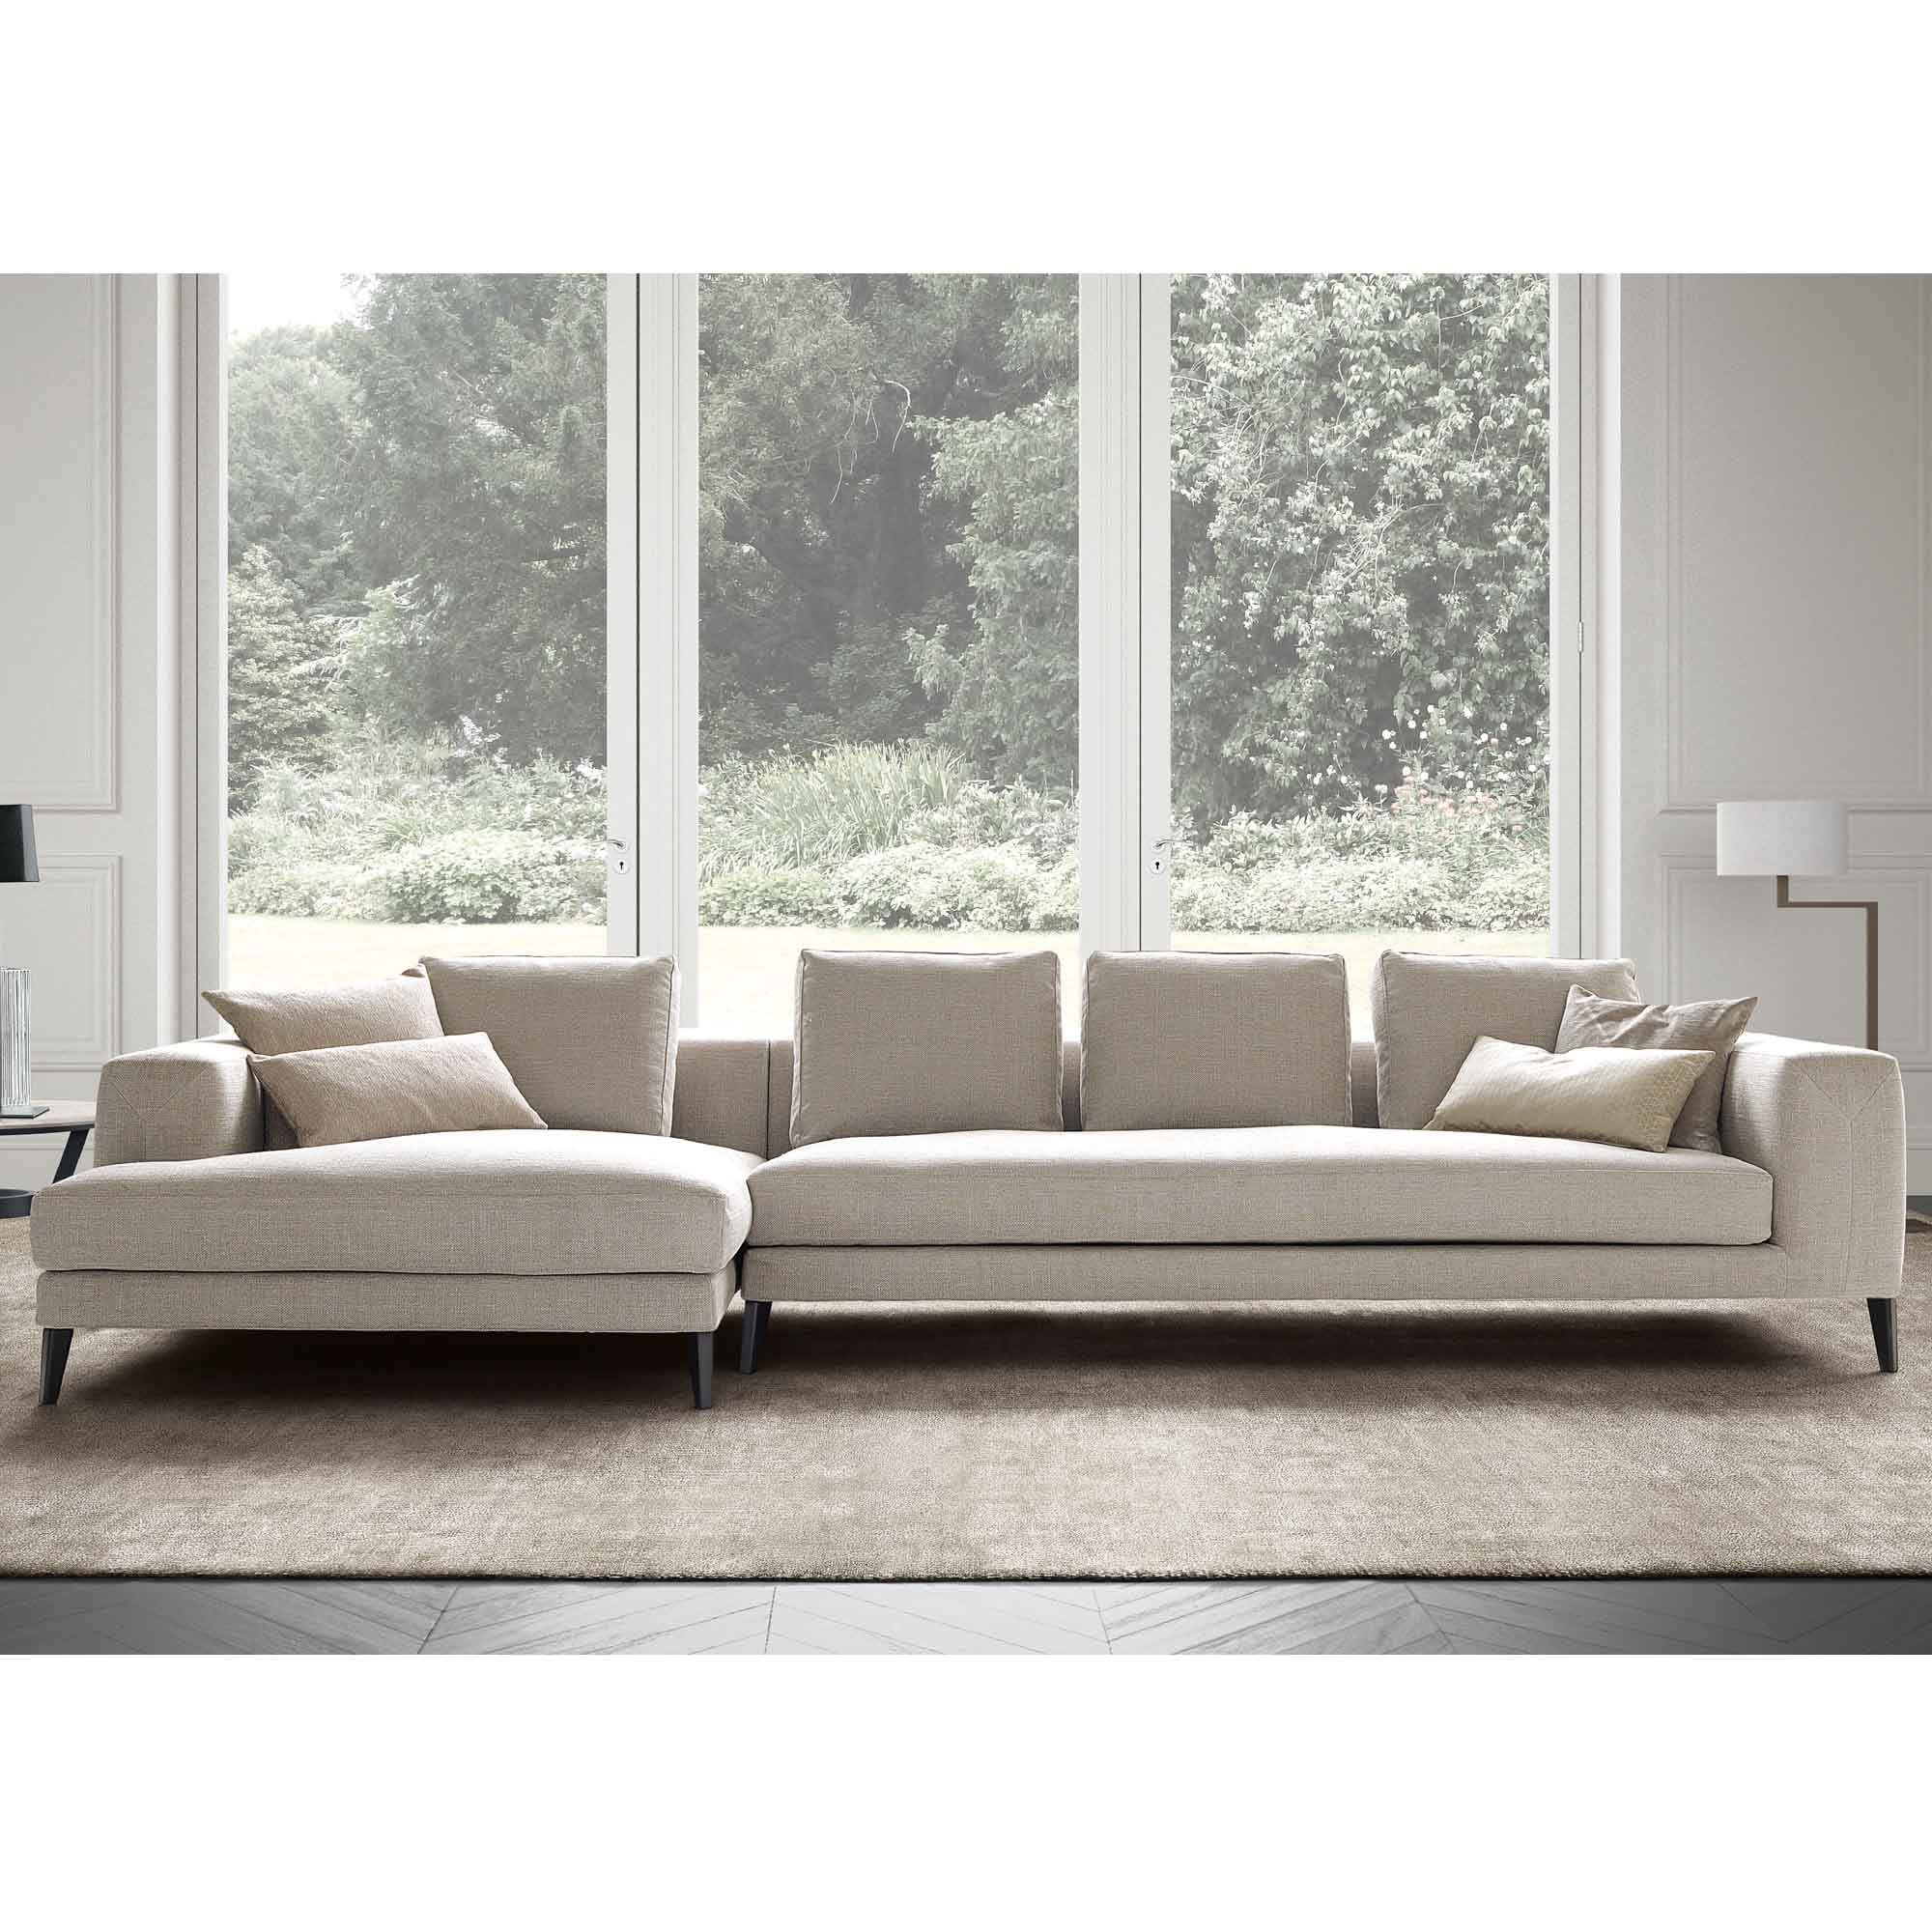 moderne ecksofa casamilano sofa hamptons. Black Bedroom Furniture Sets. Home Design Ideas